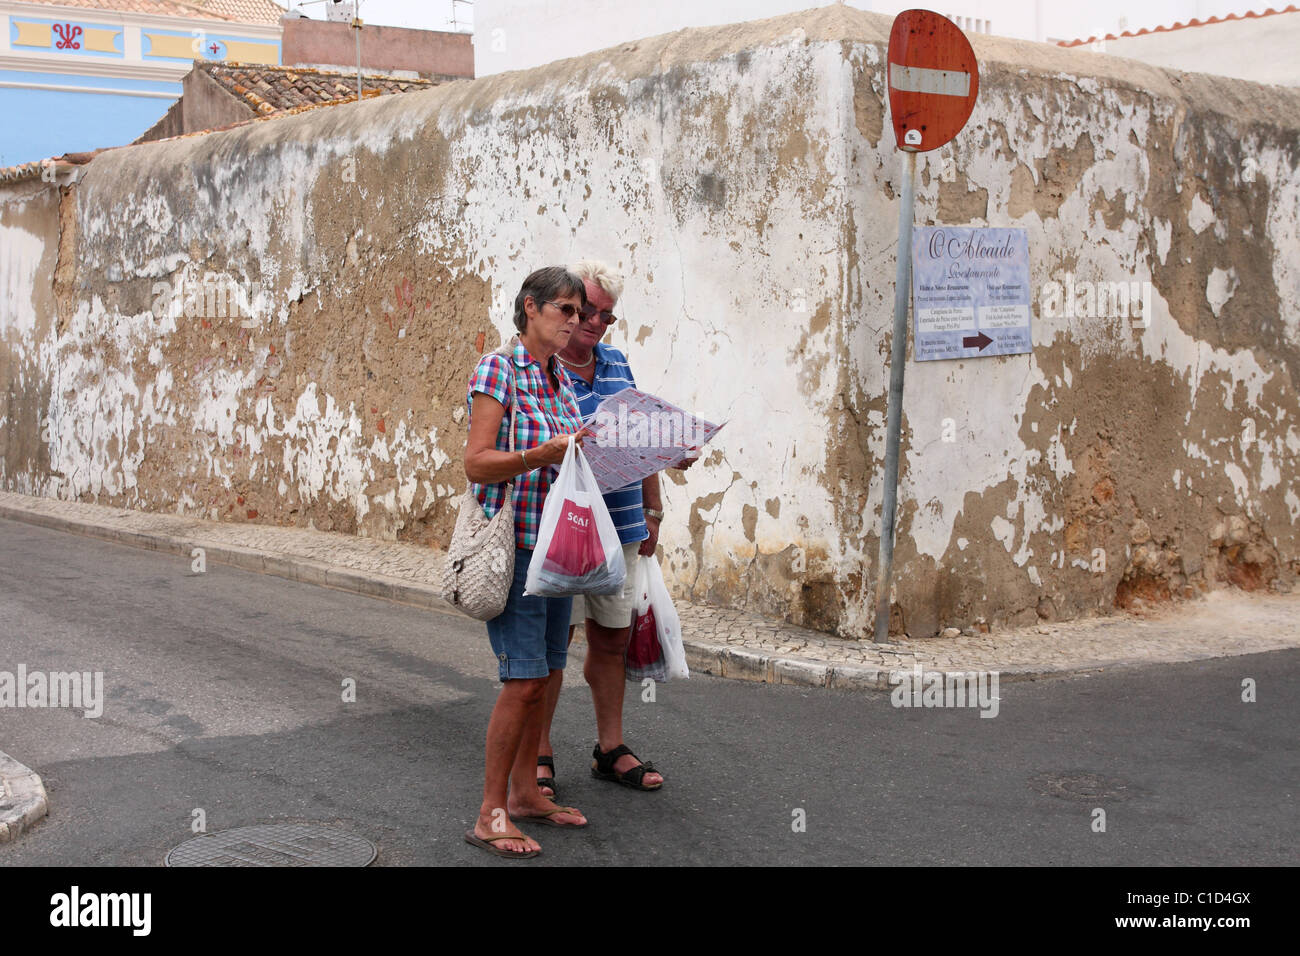 Two tourists look at the map at a crossroads. Alvor, Algarve, PORTUGAL - Stock Image